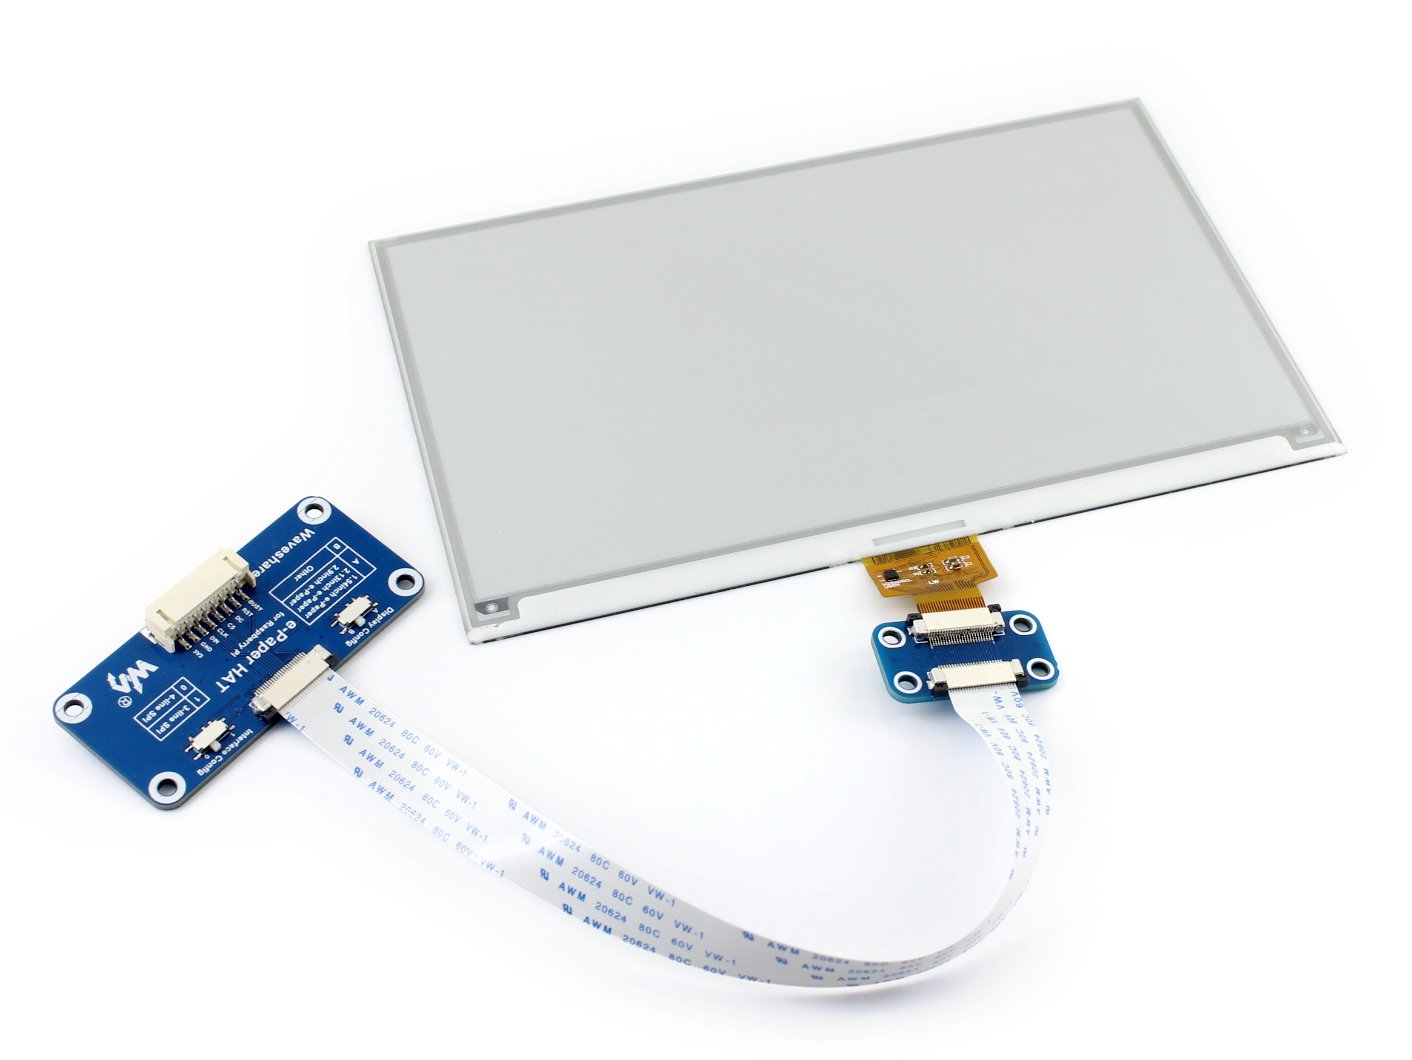 Waveshare 75 Inch E Paper Display Hat Module Kit 640x384 Resolution Wiringpi For Beaglebone 33v Ink Electronic Screen With Embedded Controller Compatible Raspberry